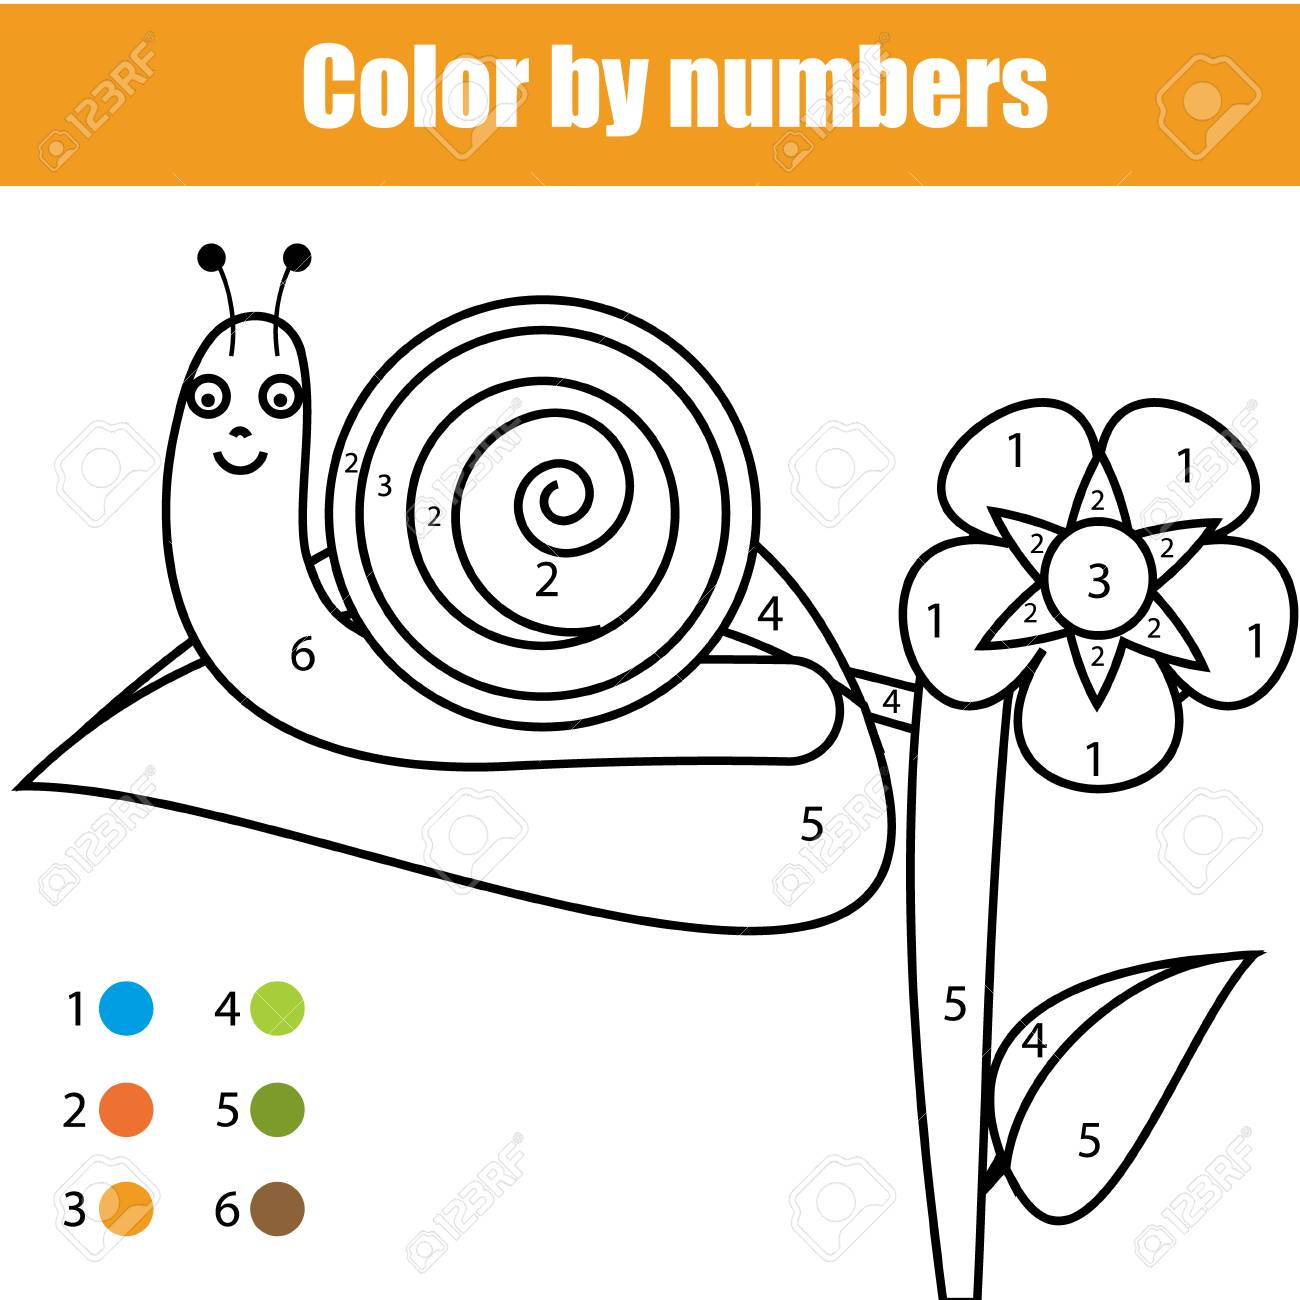 Coloring Page With Snail Character Color By Numbers Educational Children Game Drawing Kids Activity